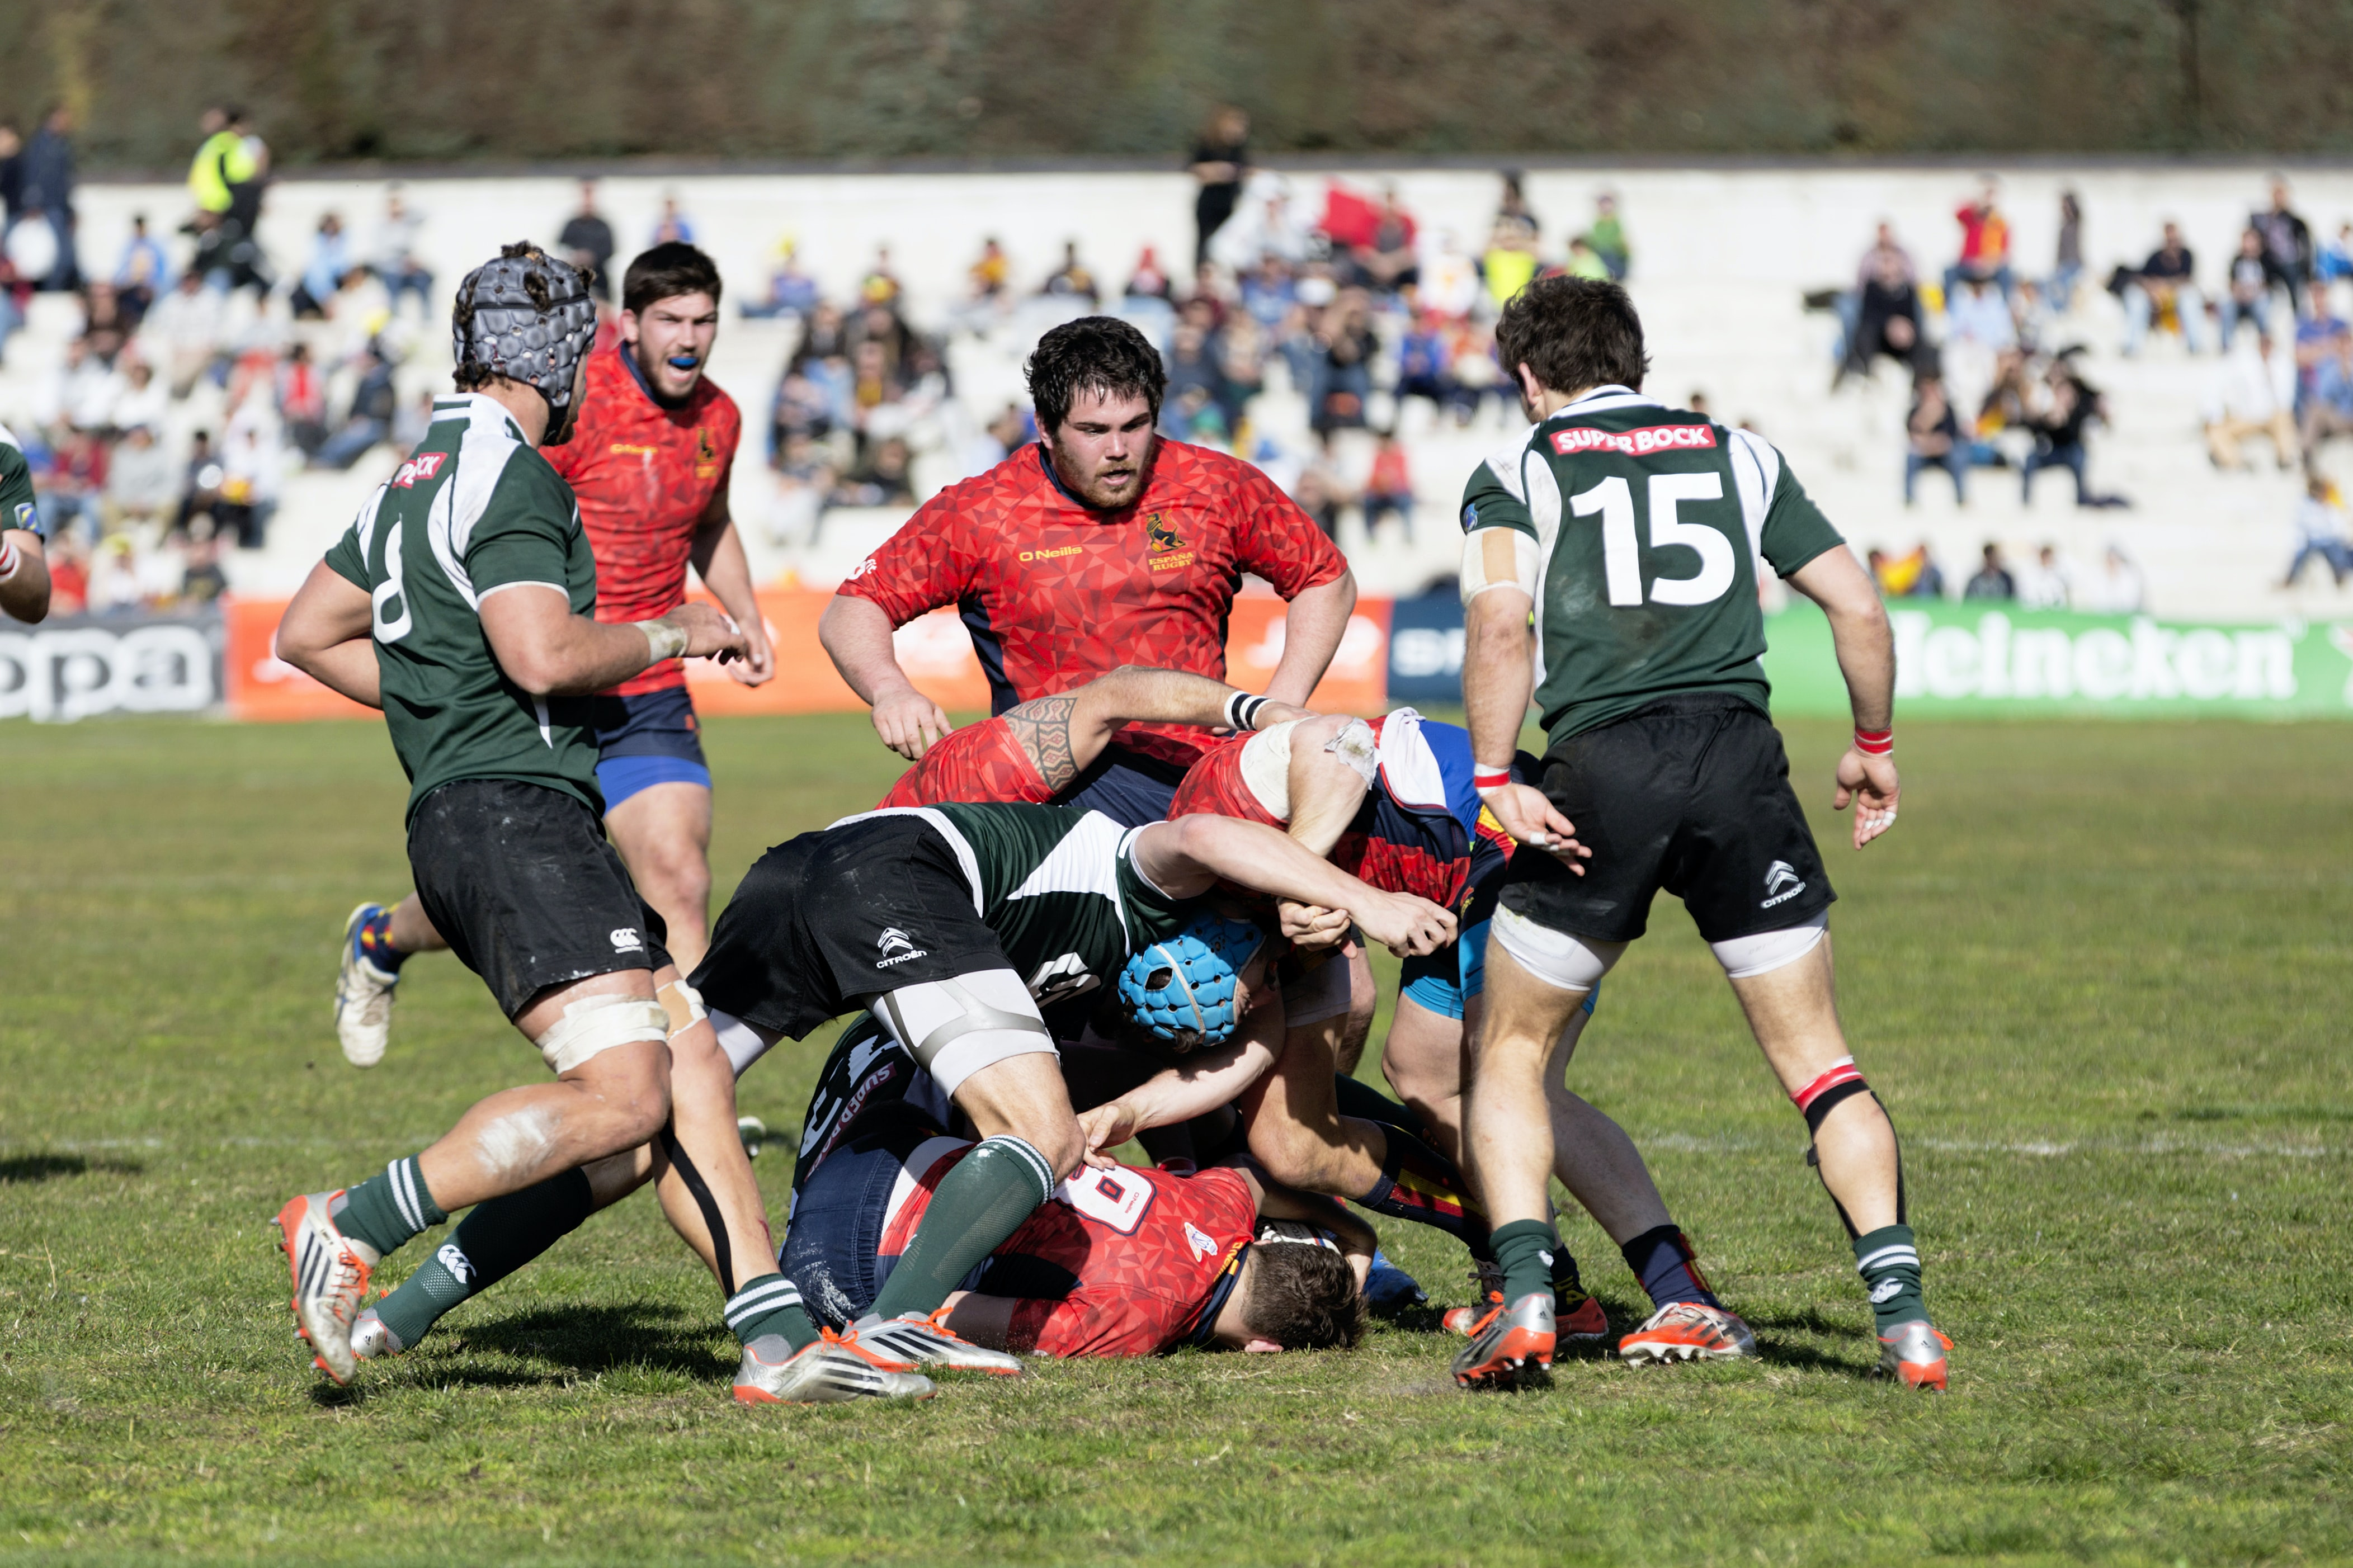 Rugby players in green and red jerseys on playing field with audience